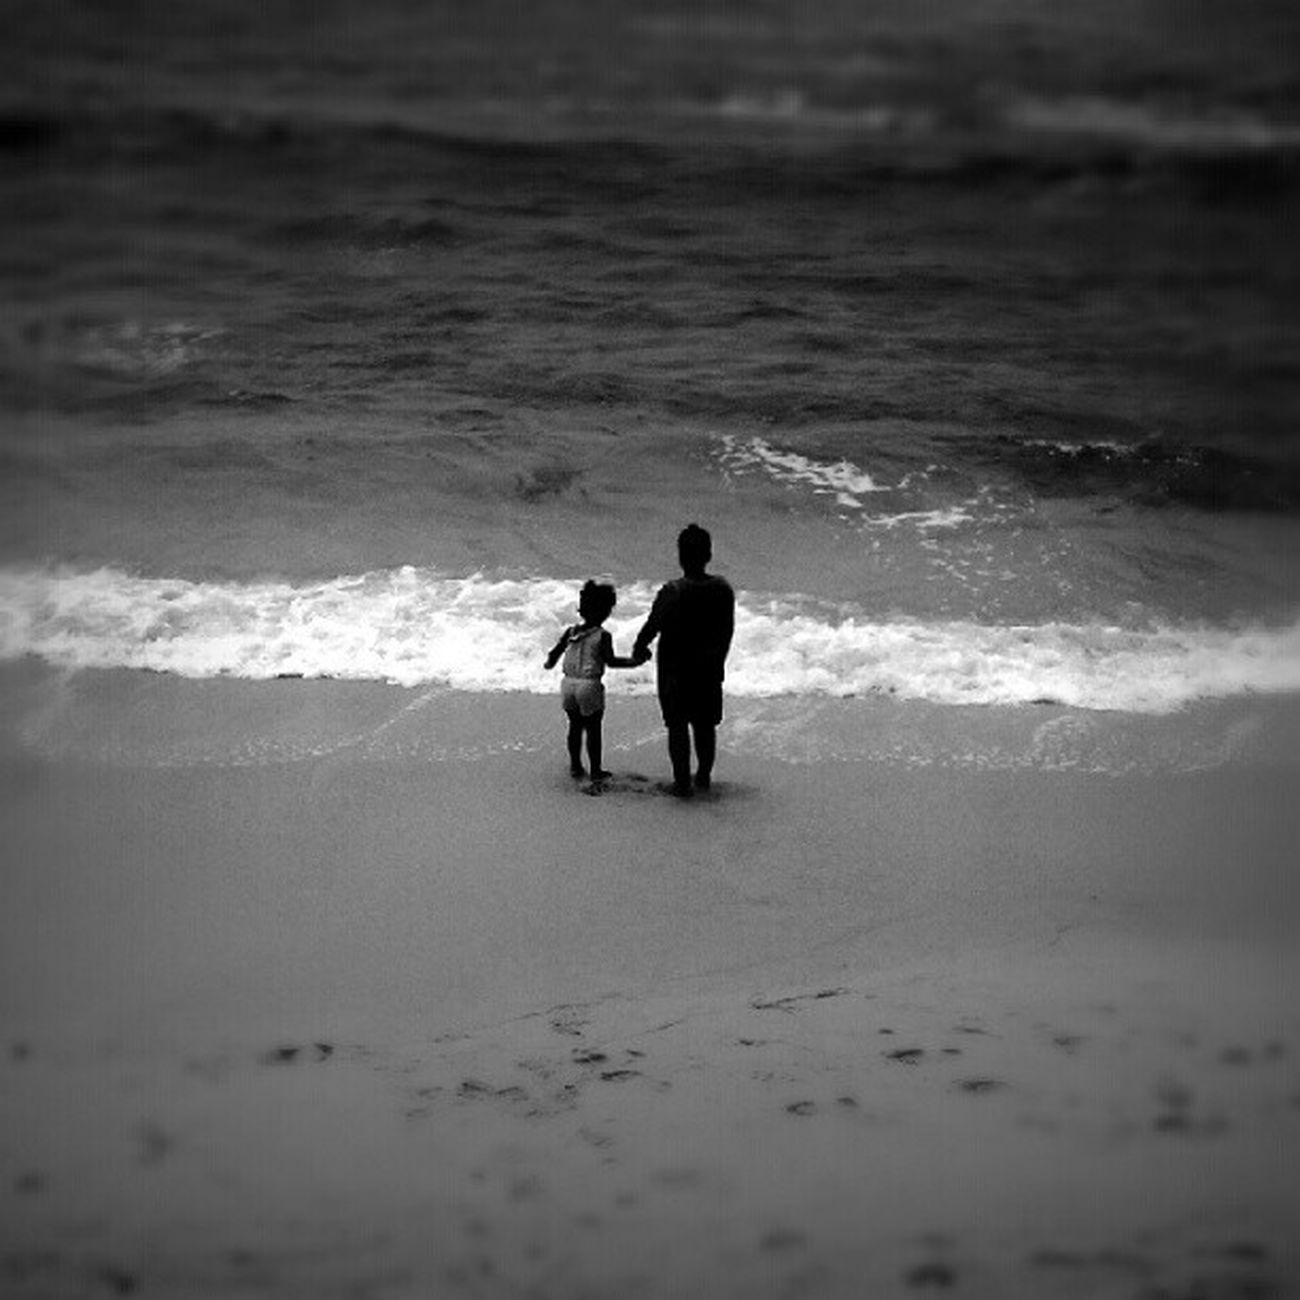 Don't worry I got you Bwwednesday Black&white Monochrome Fortheloveofblackandwhite LiveanddirectfromLosAngeles Bnw Blackandwhite Losangeles Beach Ocean